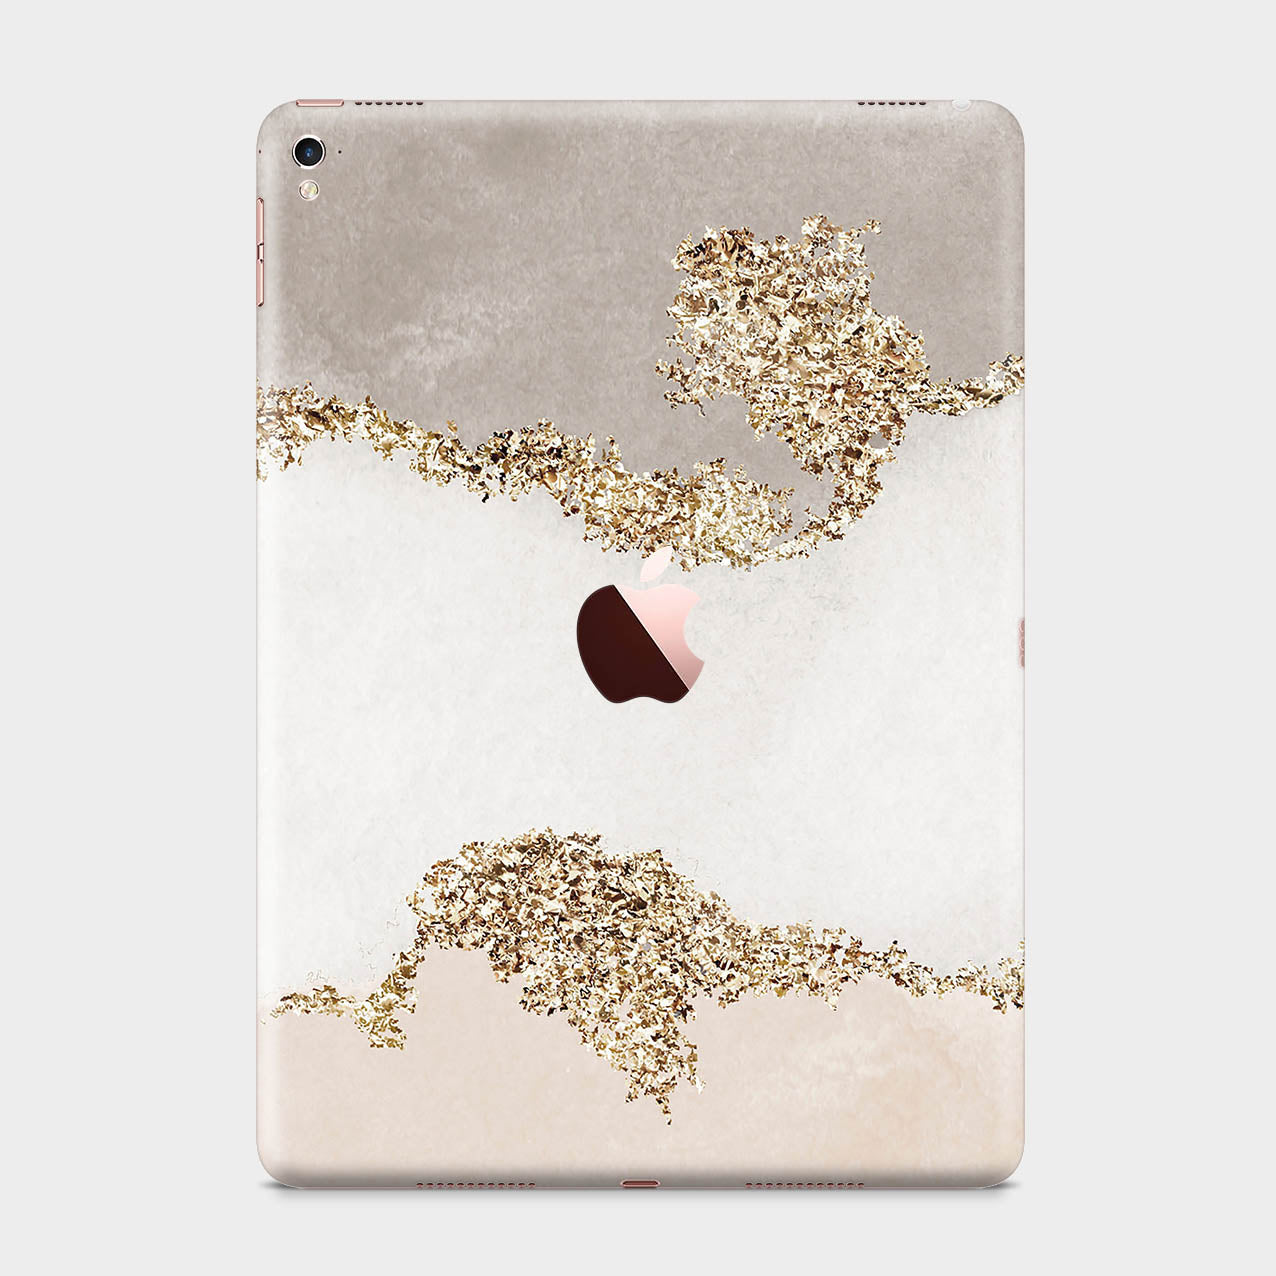 GOLDEN COAST iPad Pro 9.7 skins | Pigtou